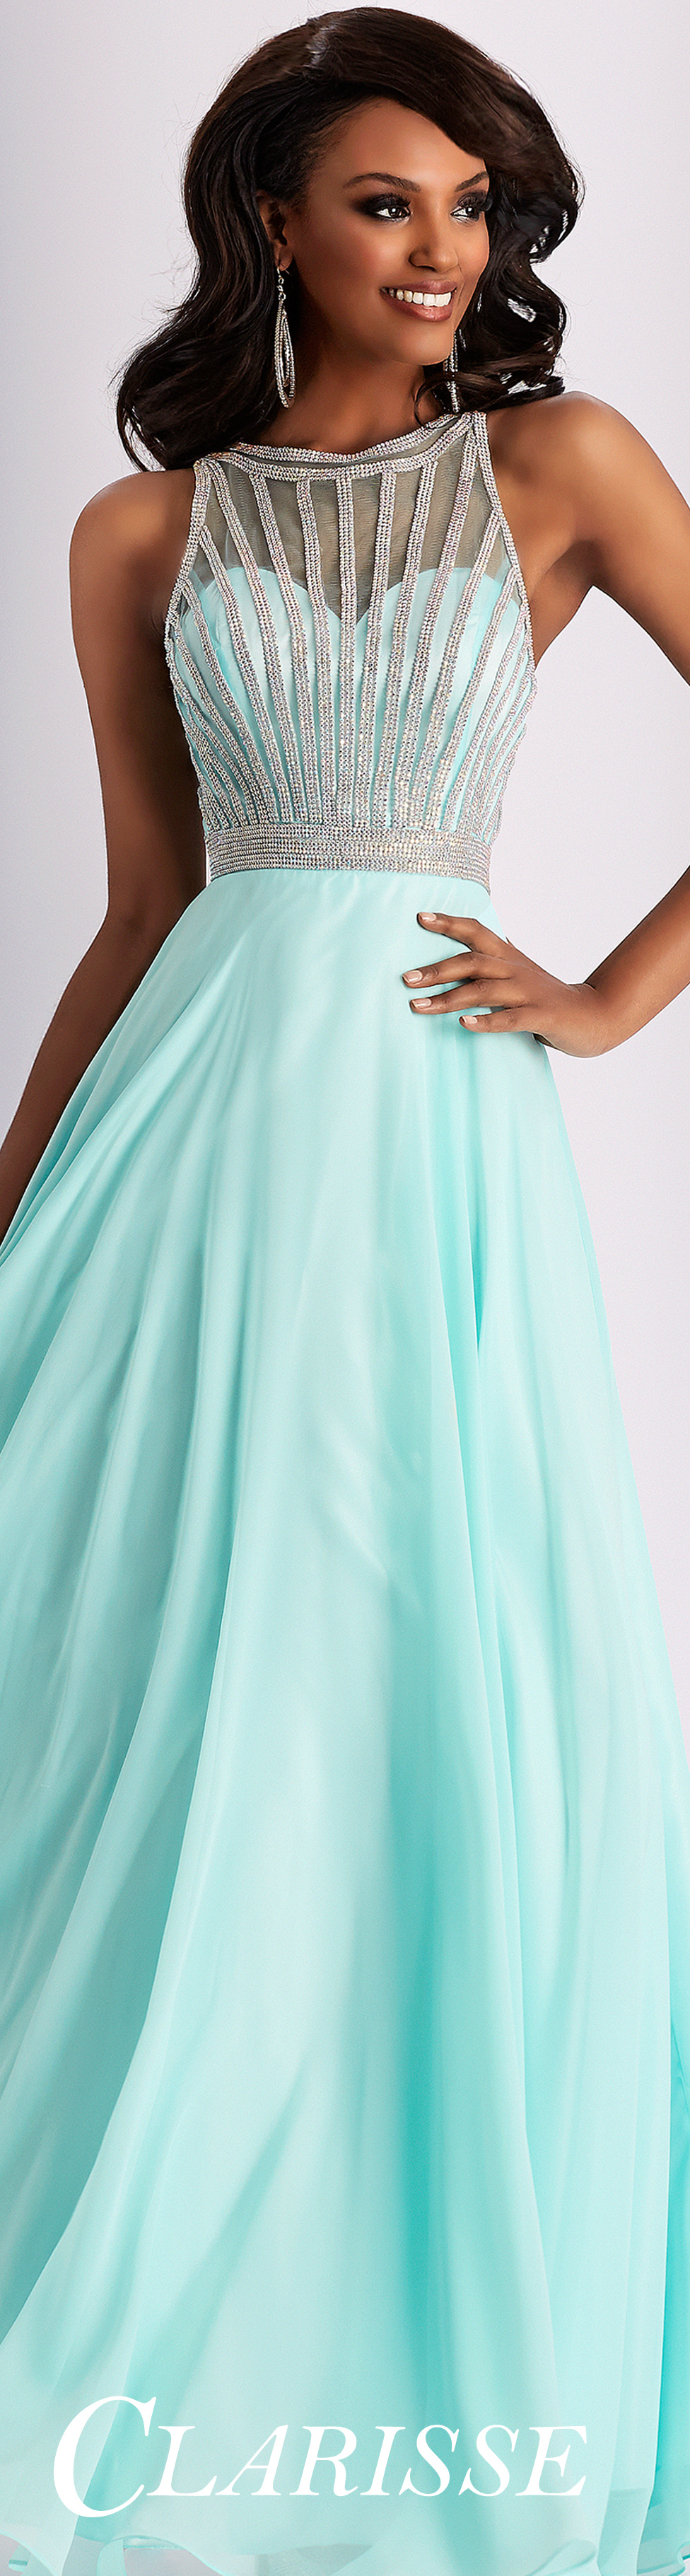 Top Selling Clarisse Prom Dress 3068! Stunning a-line prom dress ...